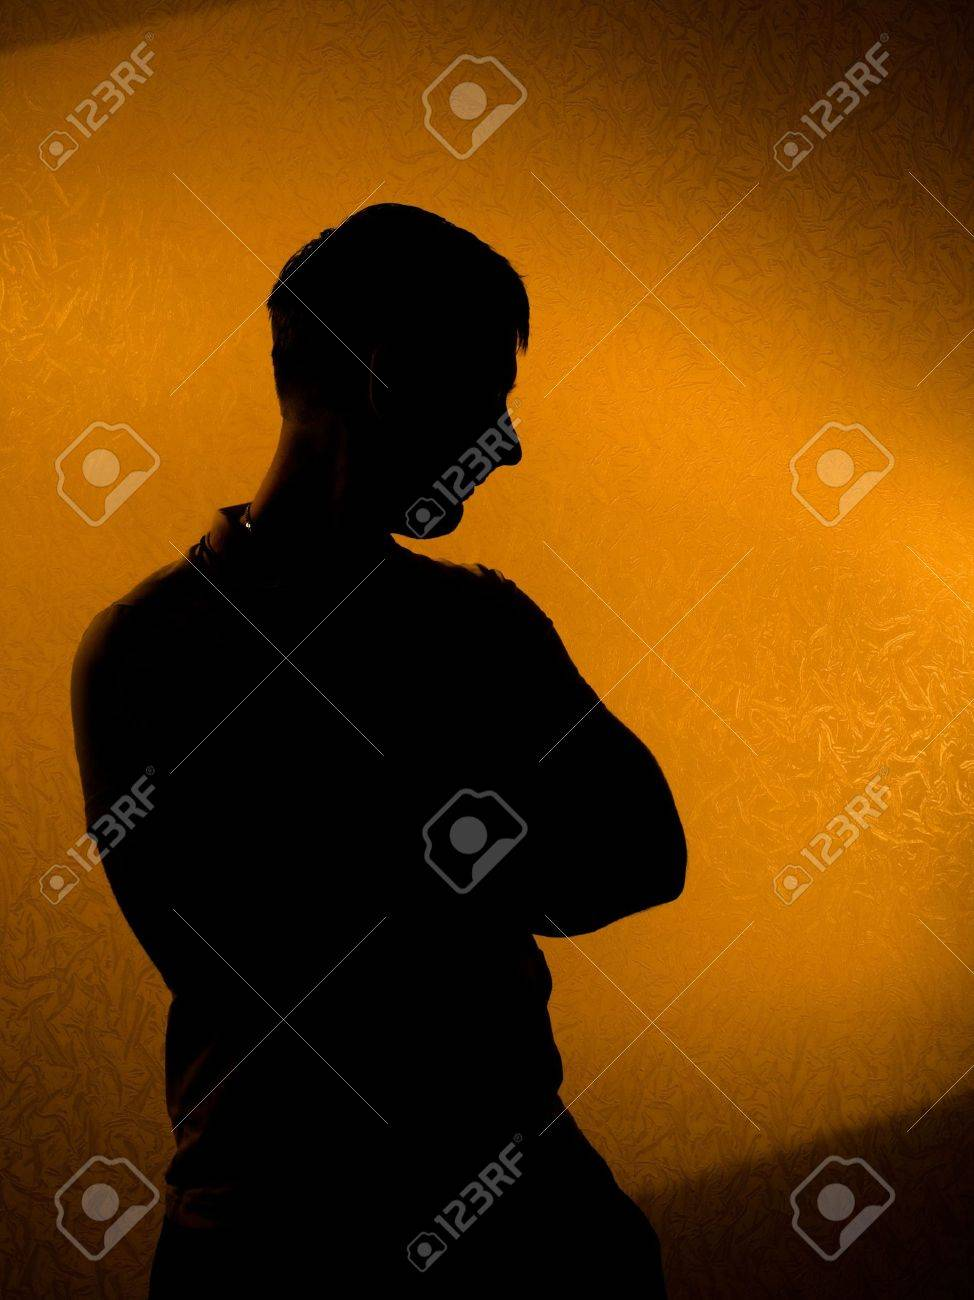 Thinking of something. silhouette of man in the darkness Stock Photo - 6835805